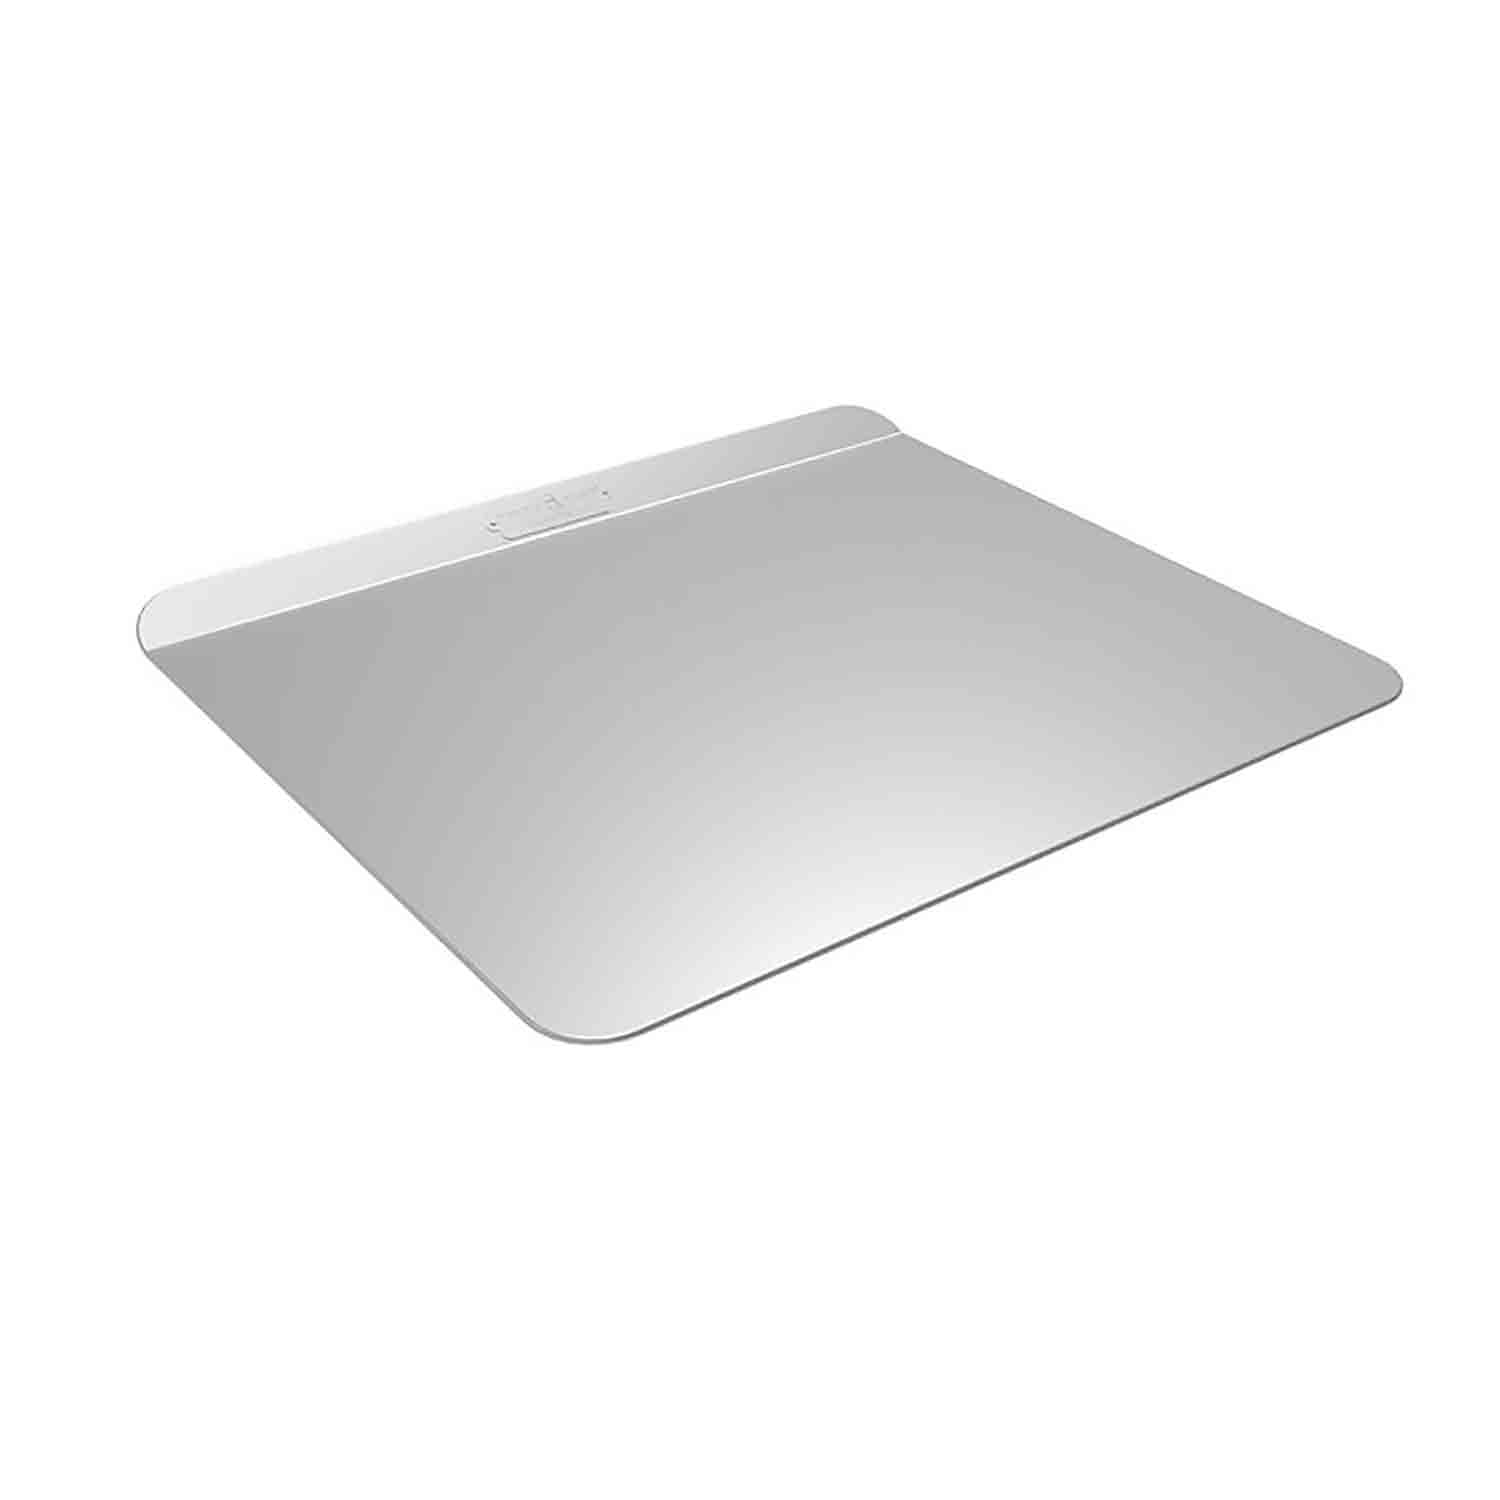 Insulated Cookie Sheet - 13 x 16